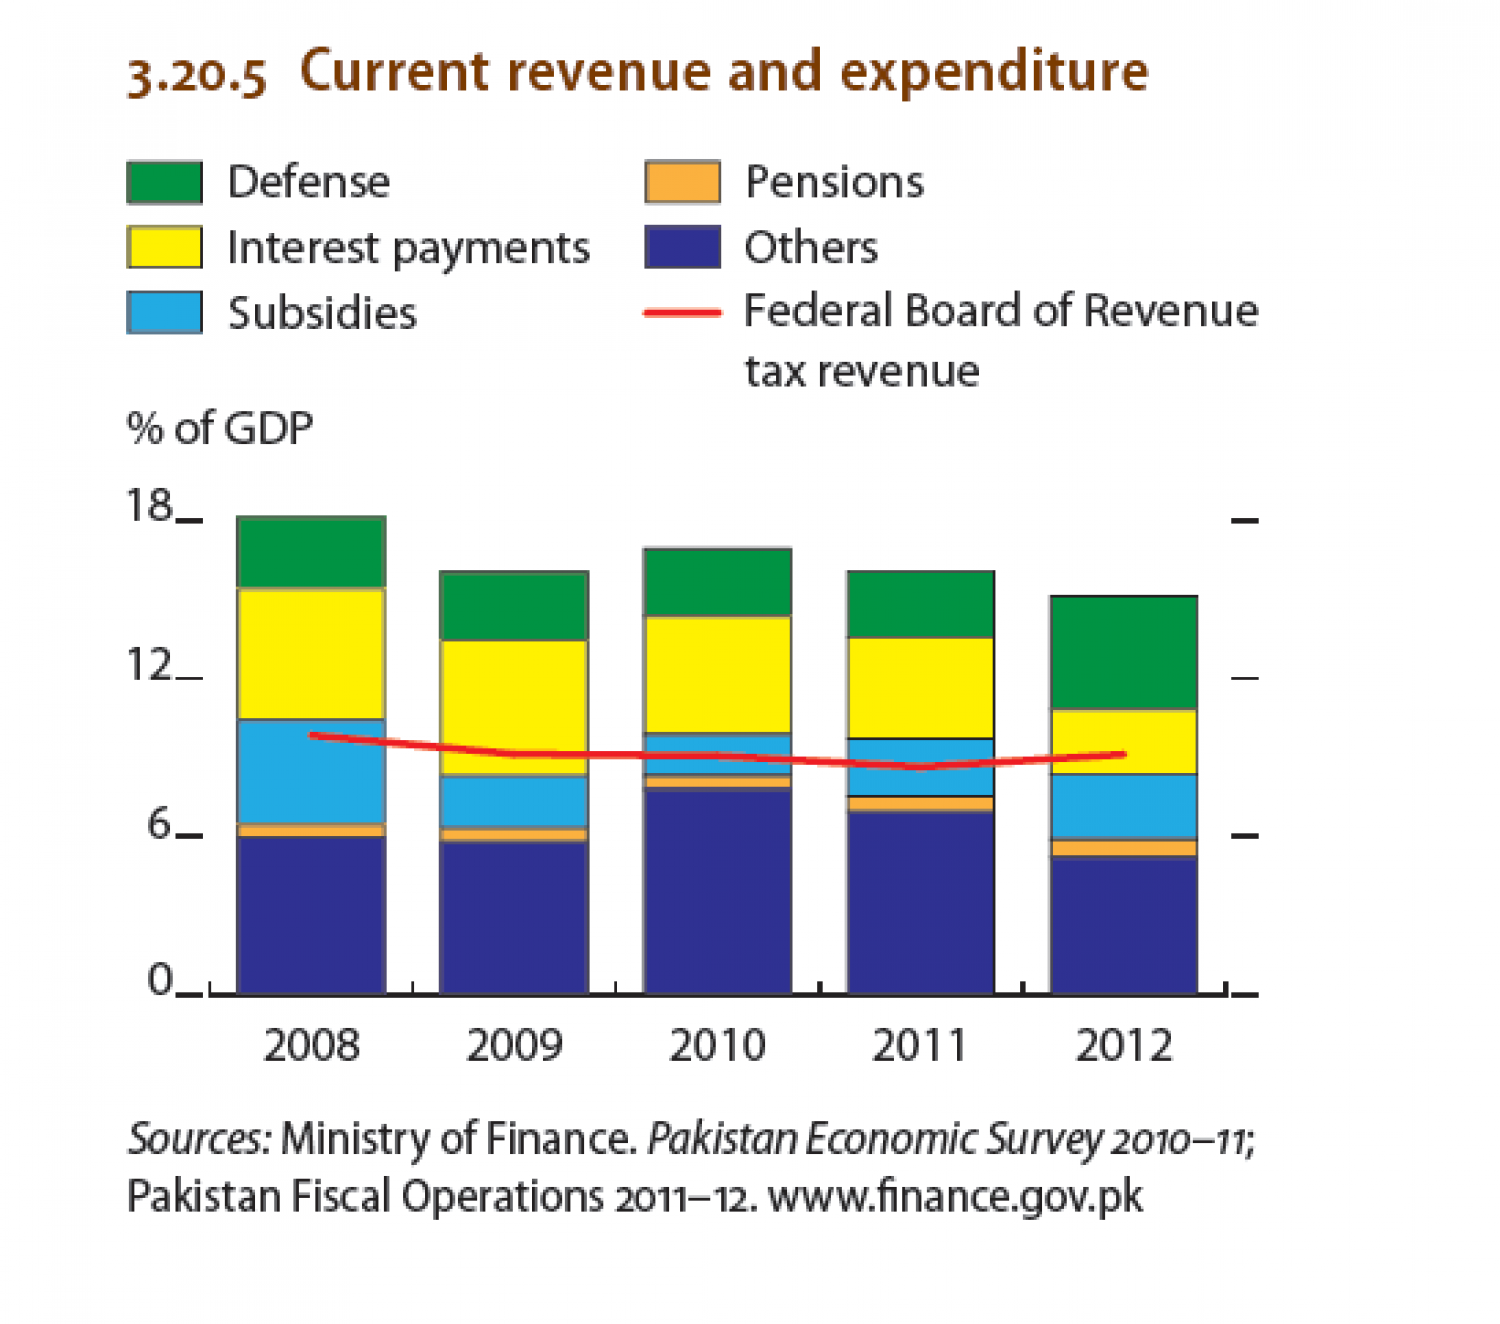 Pakistan - Current revenue and expenditure Infographic